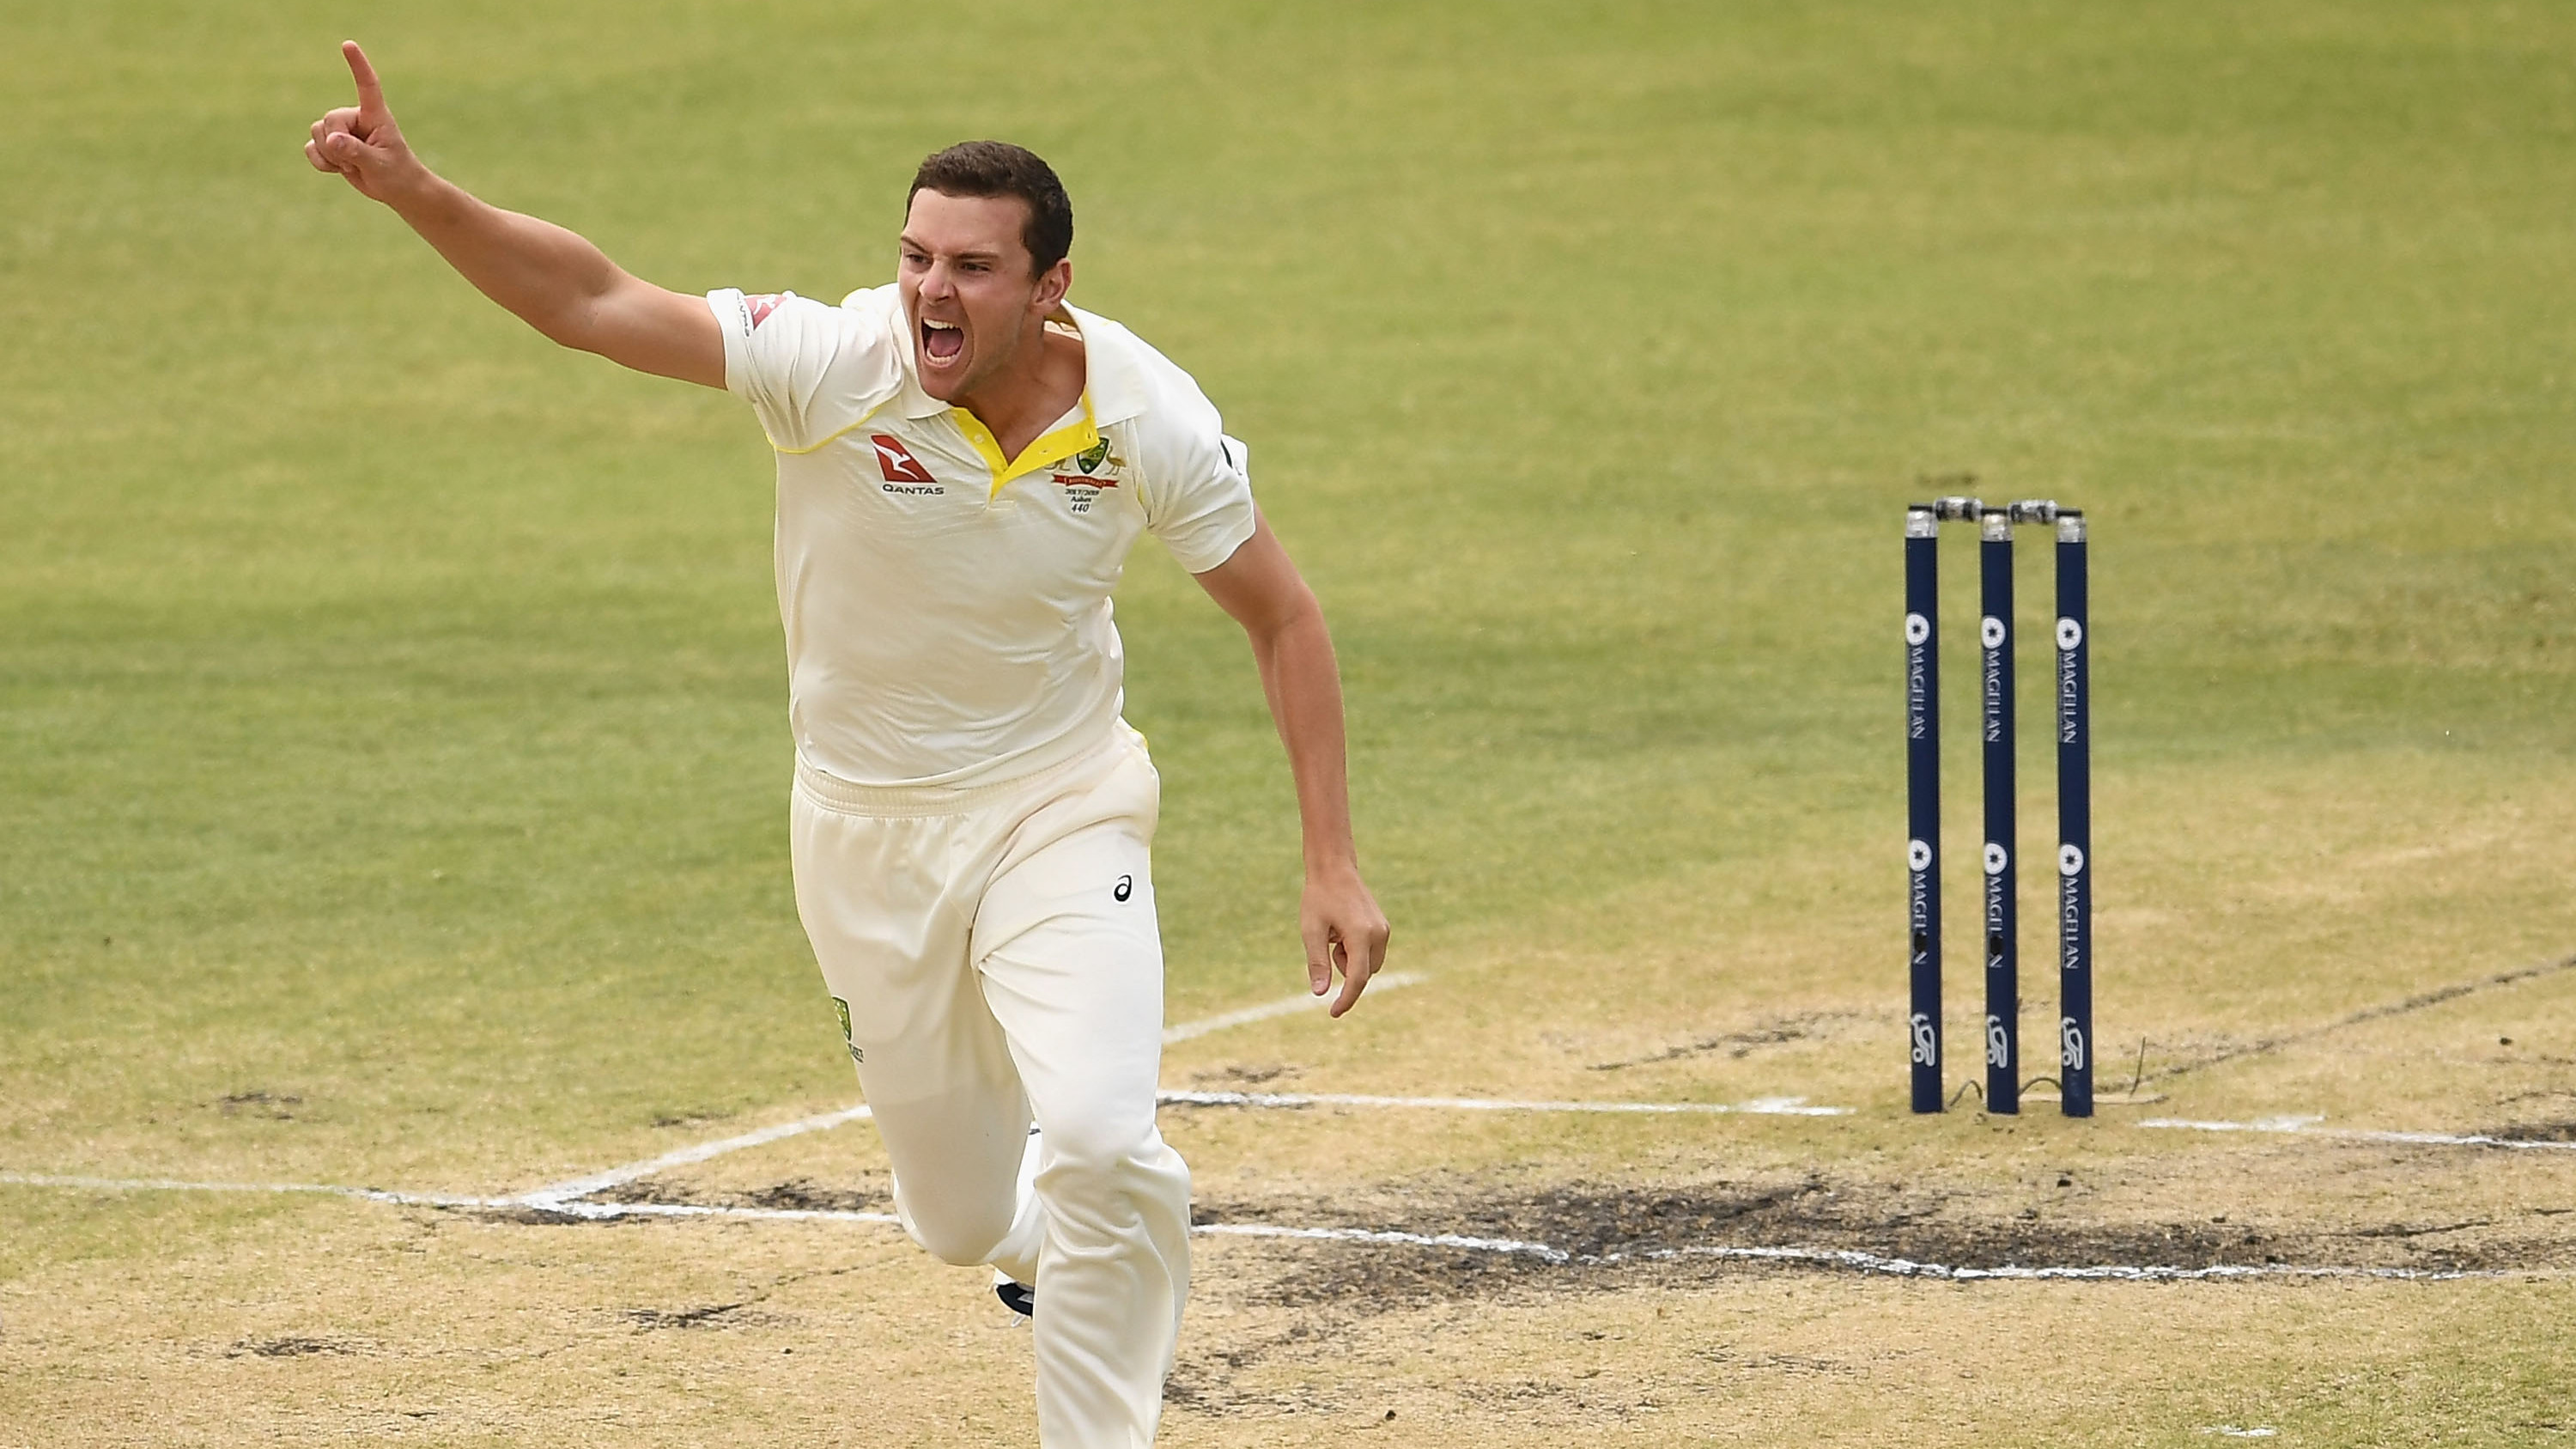 Josh Hazlewood hopes to make a comeback with domestic One-Day Cup